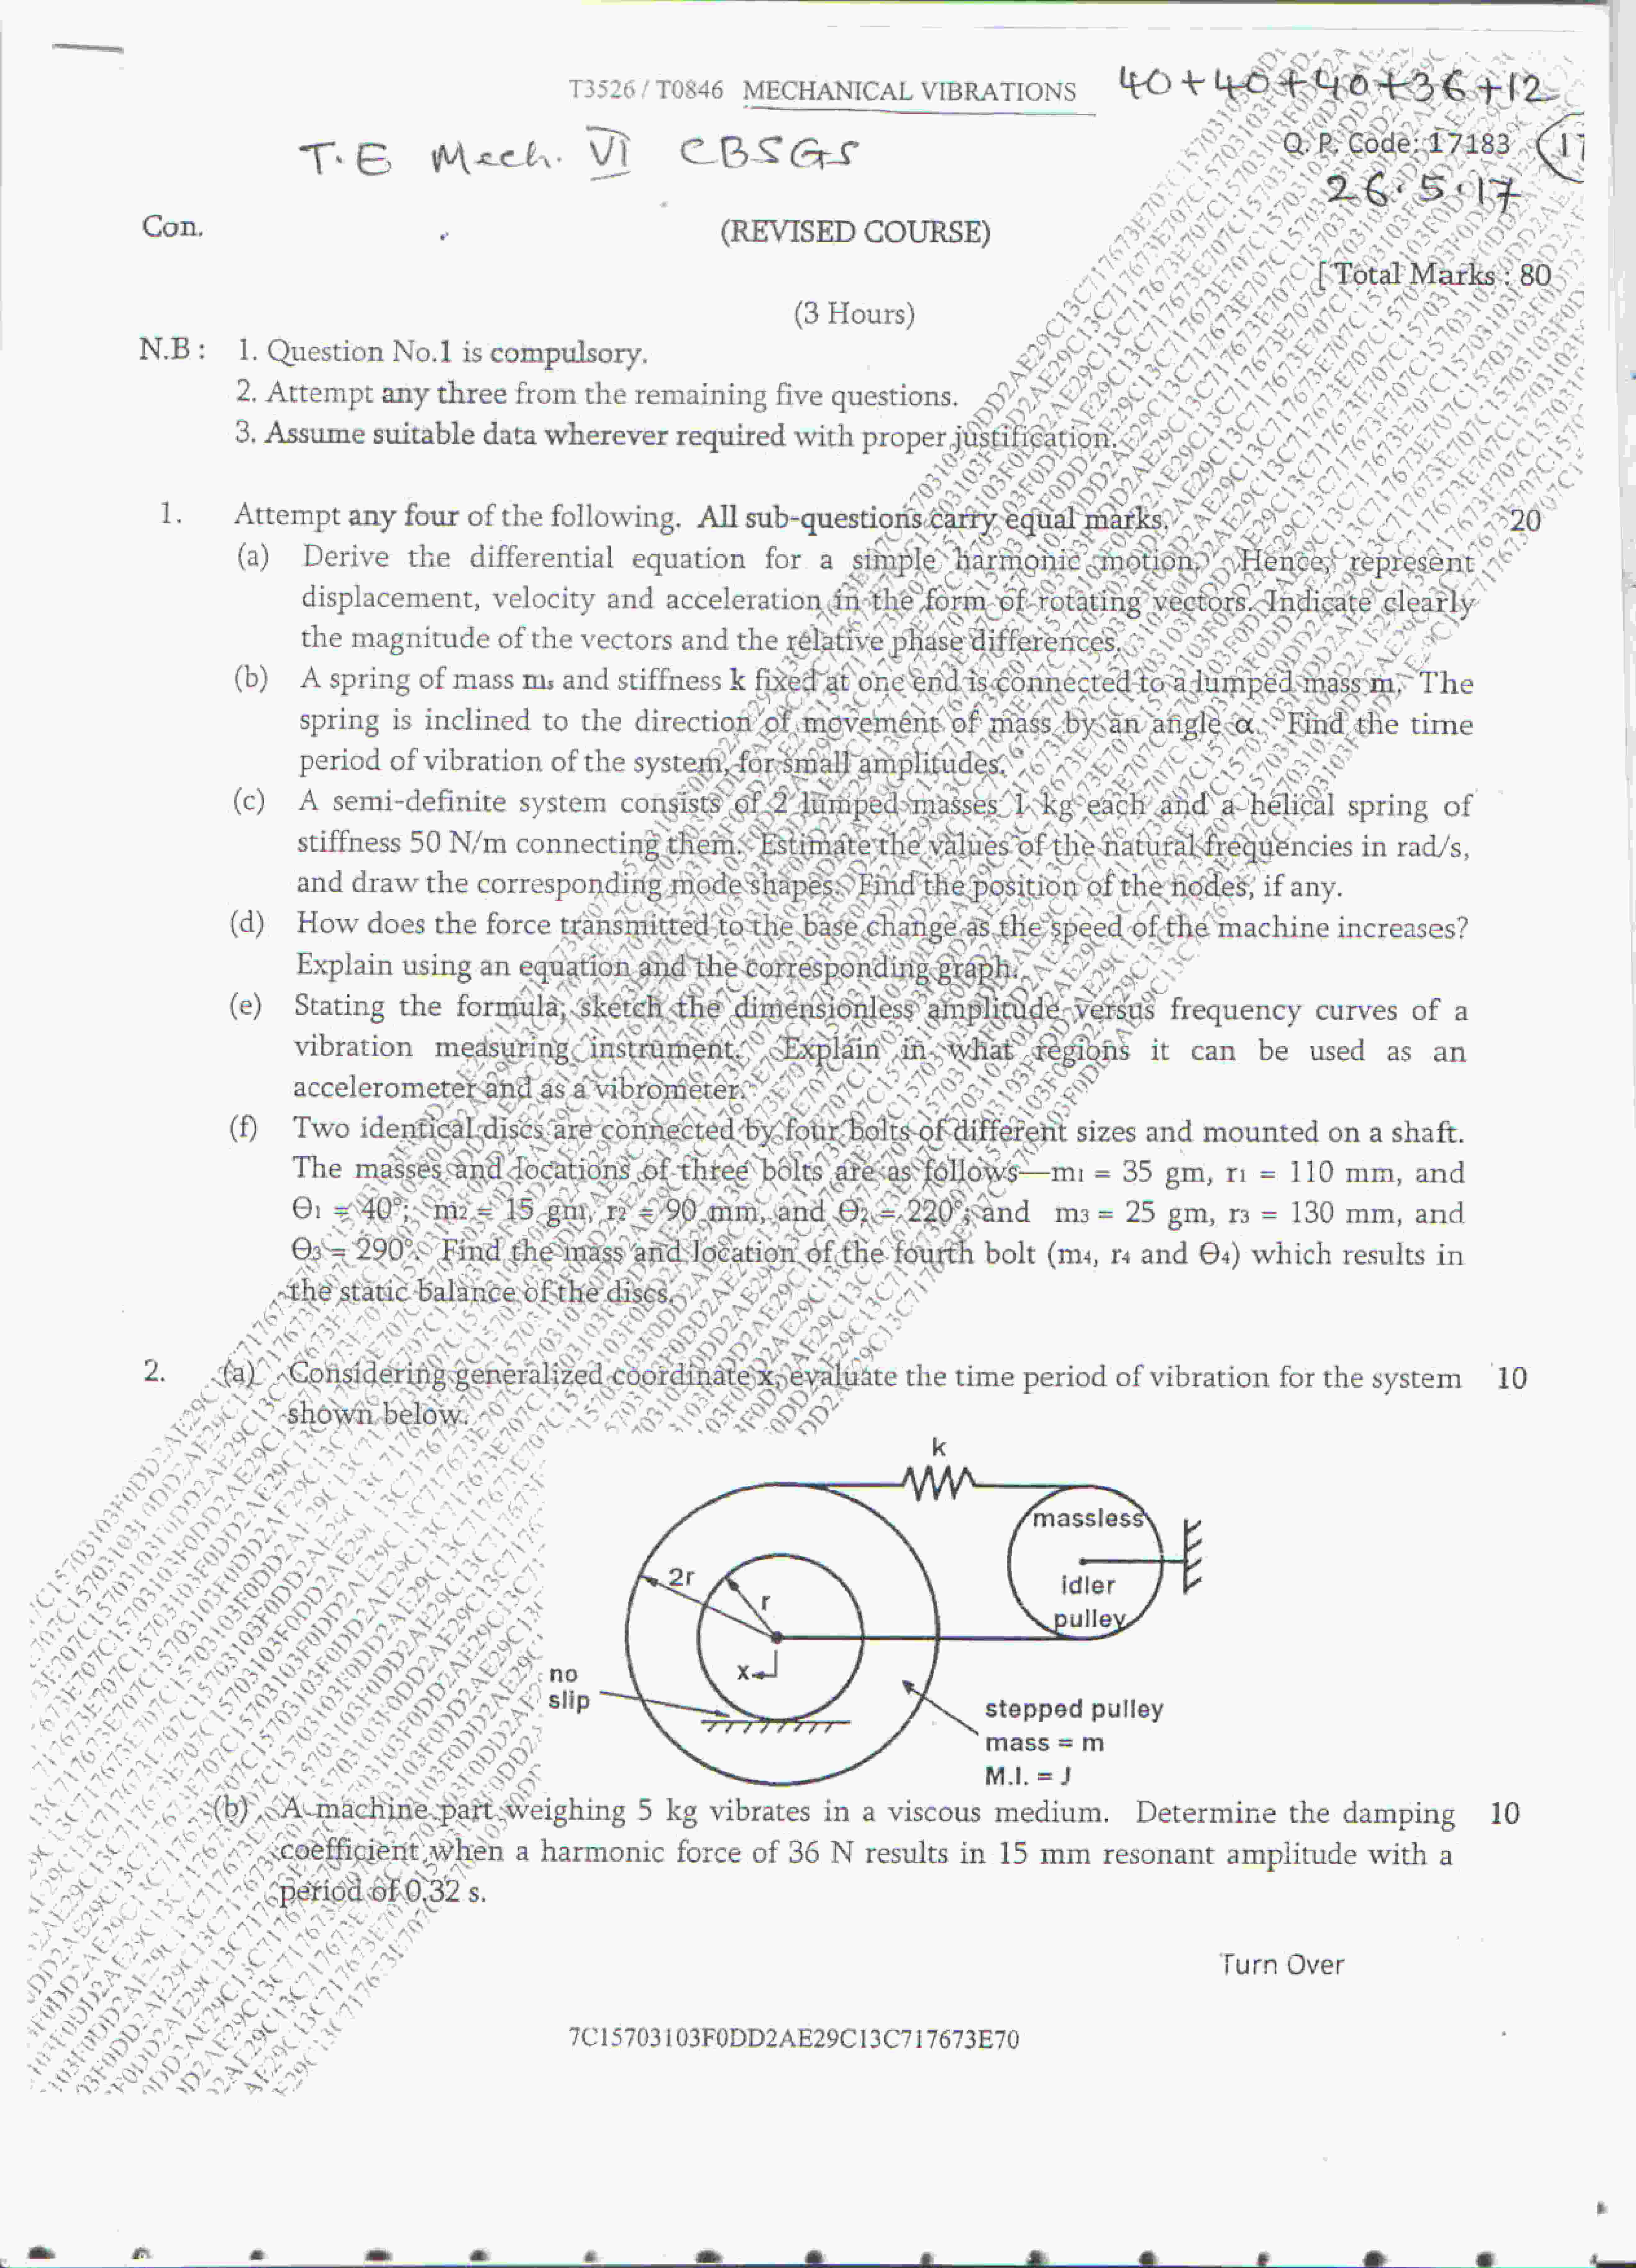 Mechanical vibrations question paper may 2017 mechanical engineering mechanical vibrations question paper may 2017 mechanical engineering semester 6 mumbai university malvernweather Gallery